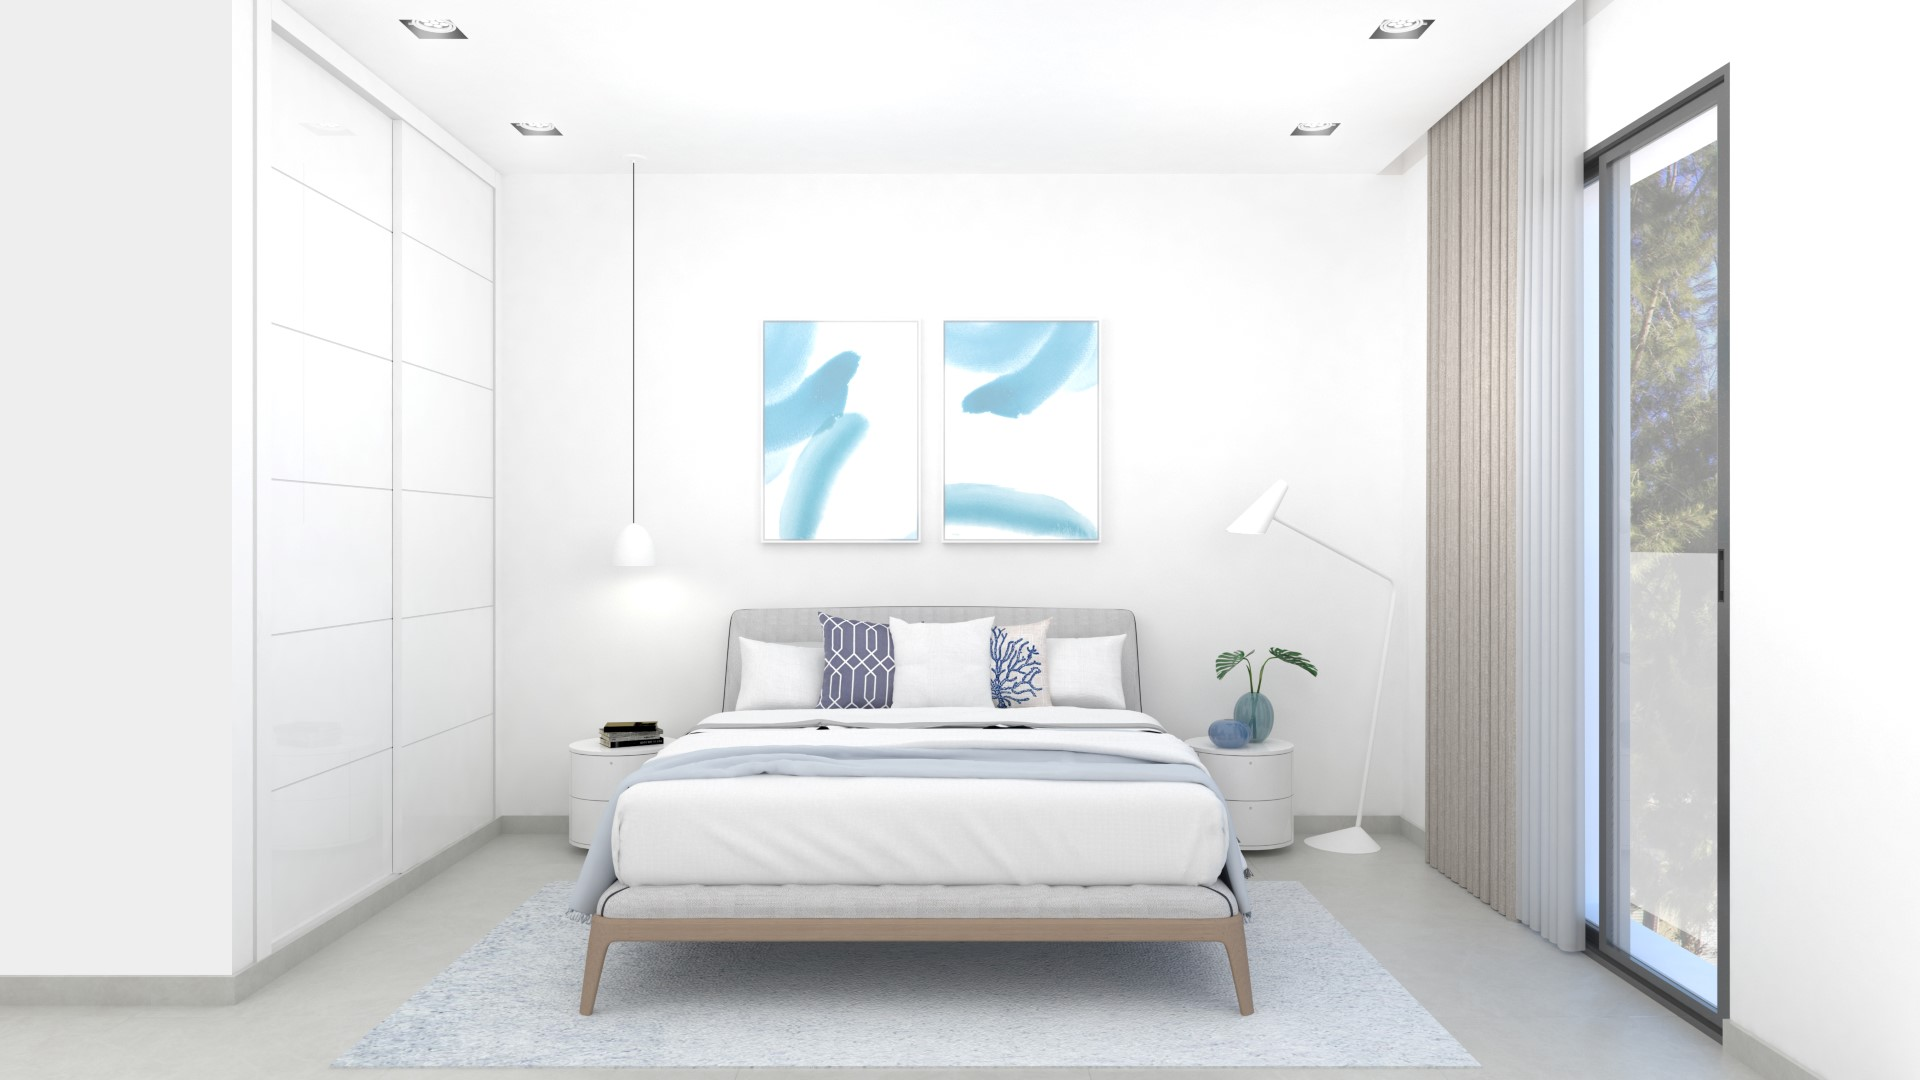 NAYA architects alicante amistad building in la marina bedroom 1